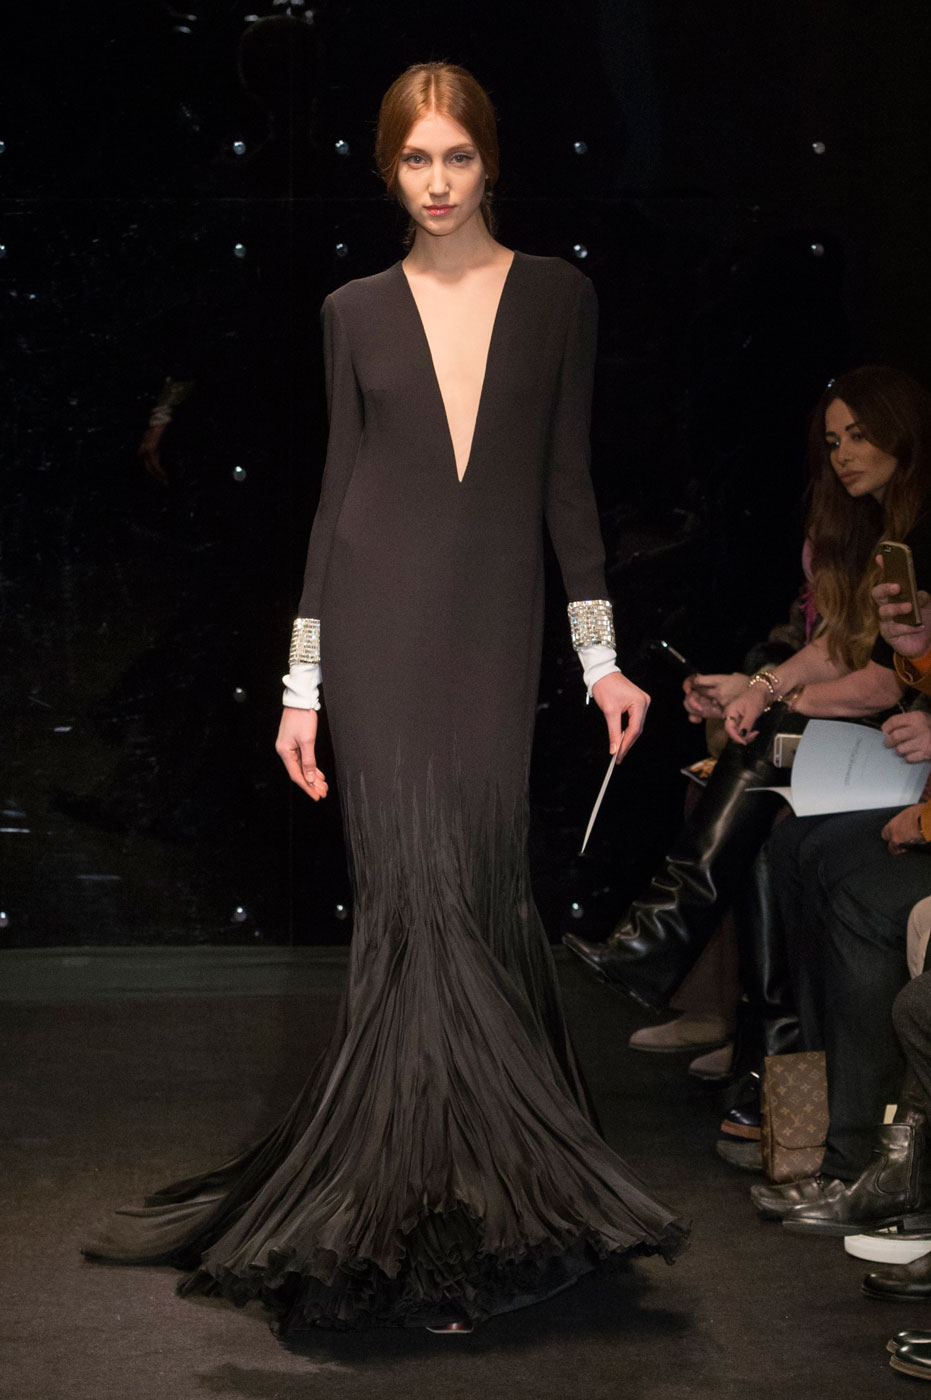 Stéphane Rolland Throws Back to Old Paris Salons for Spring 2016 Couture